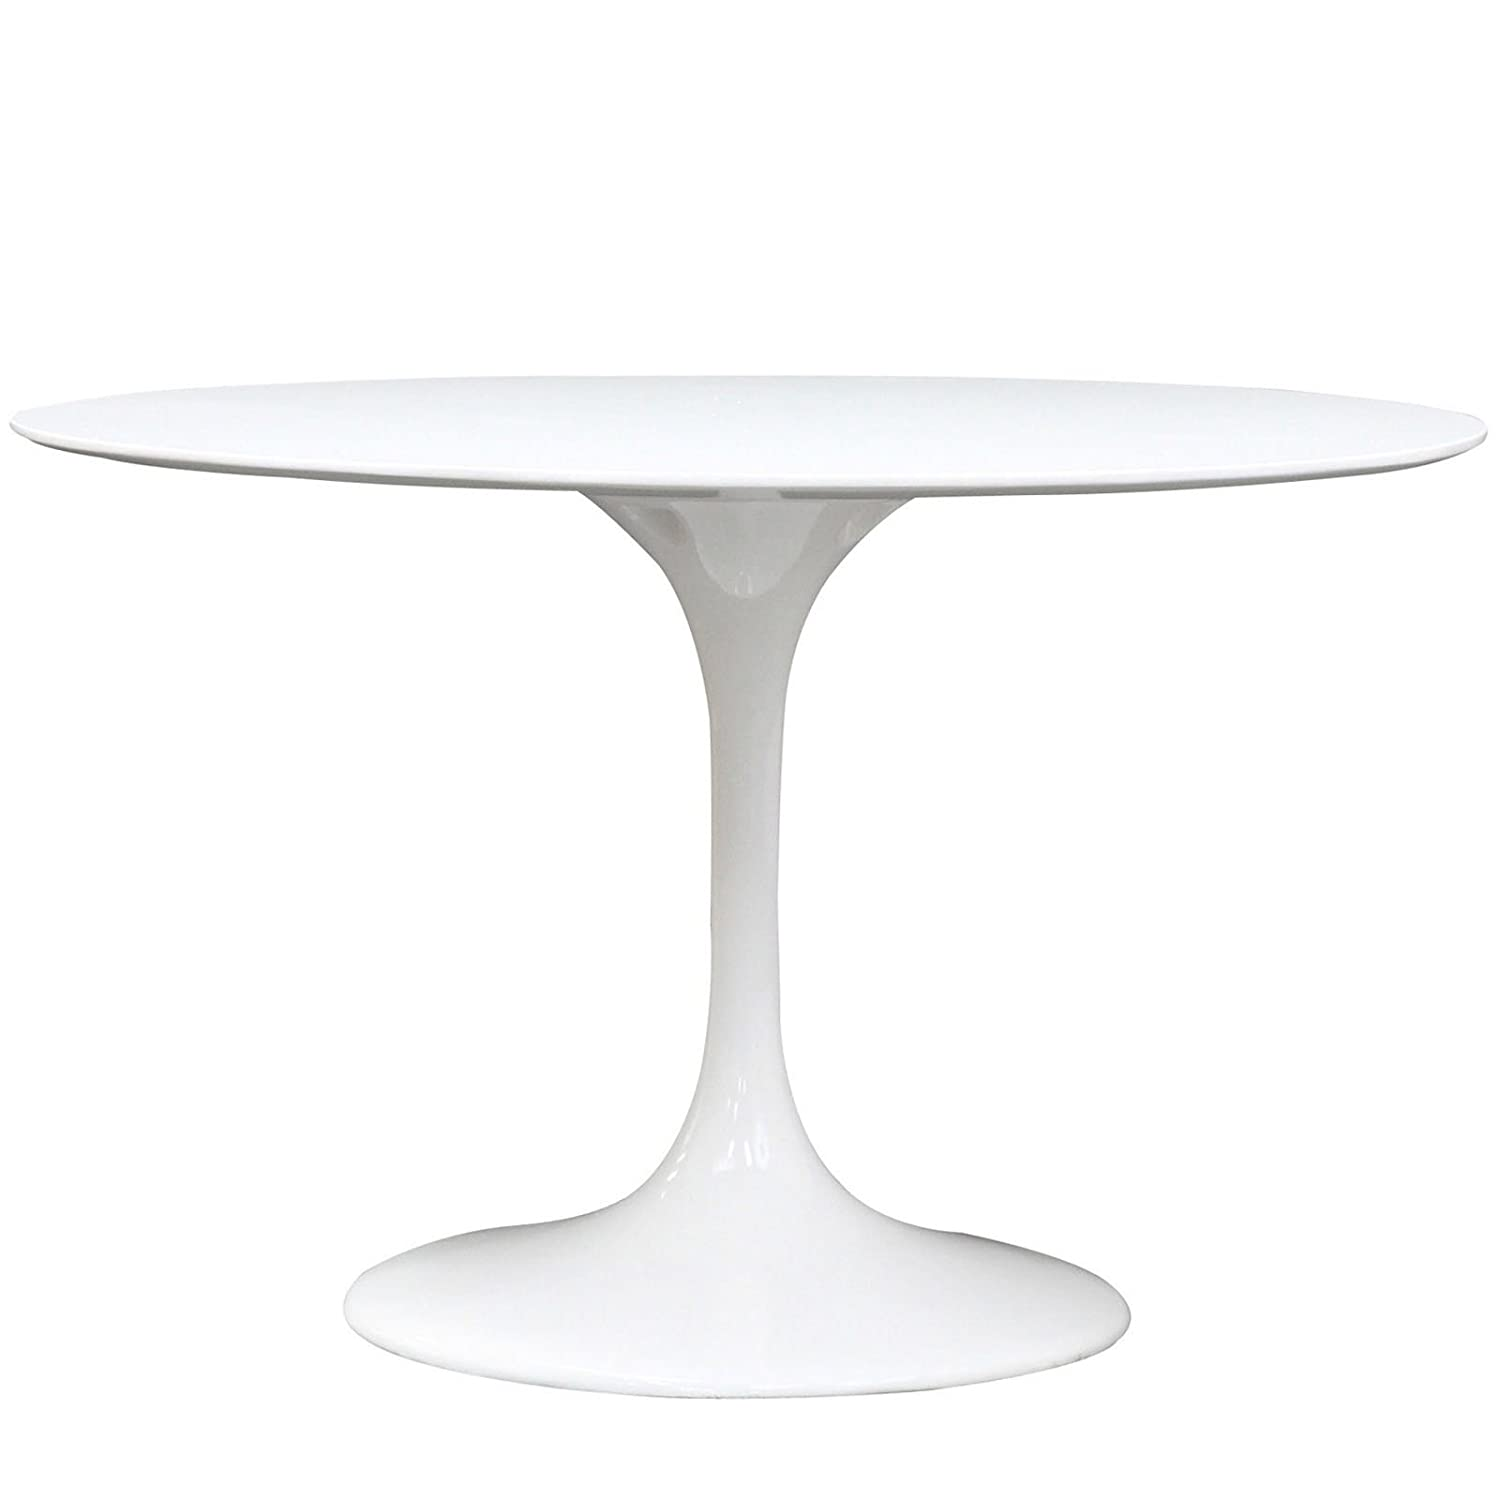 Amazoncom Modway Lippa Inch Round Fiberglass Dining Table In - 48 inch round contemporary dining table